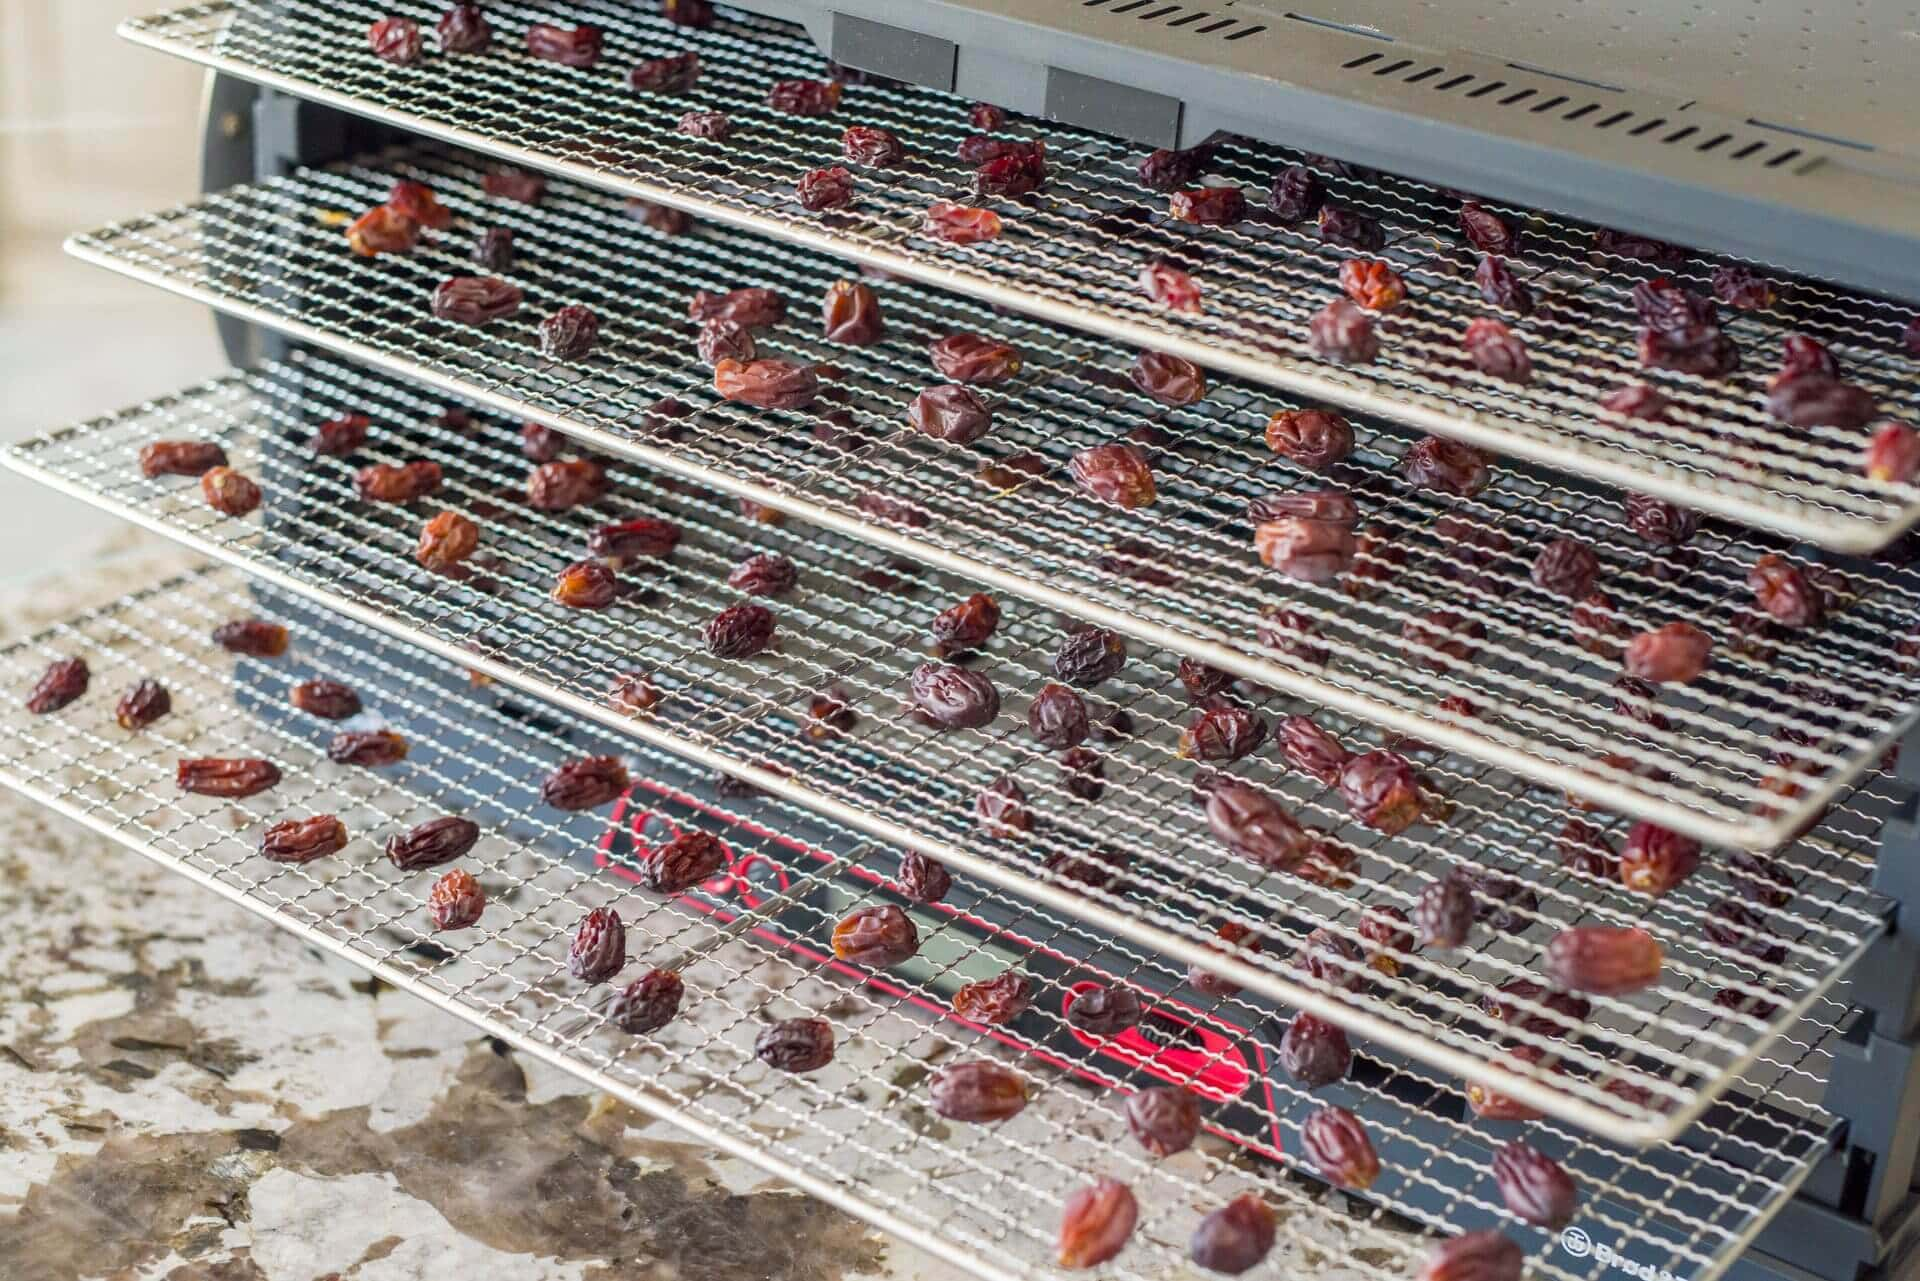 Dehydrated grapes in the B&T Sahara Food Dehydrator via @theperfectloaf